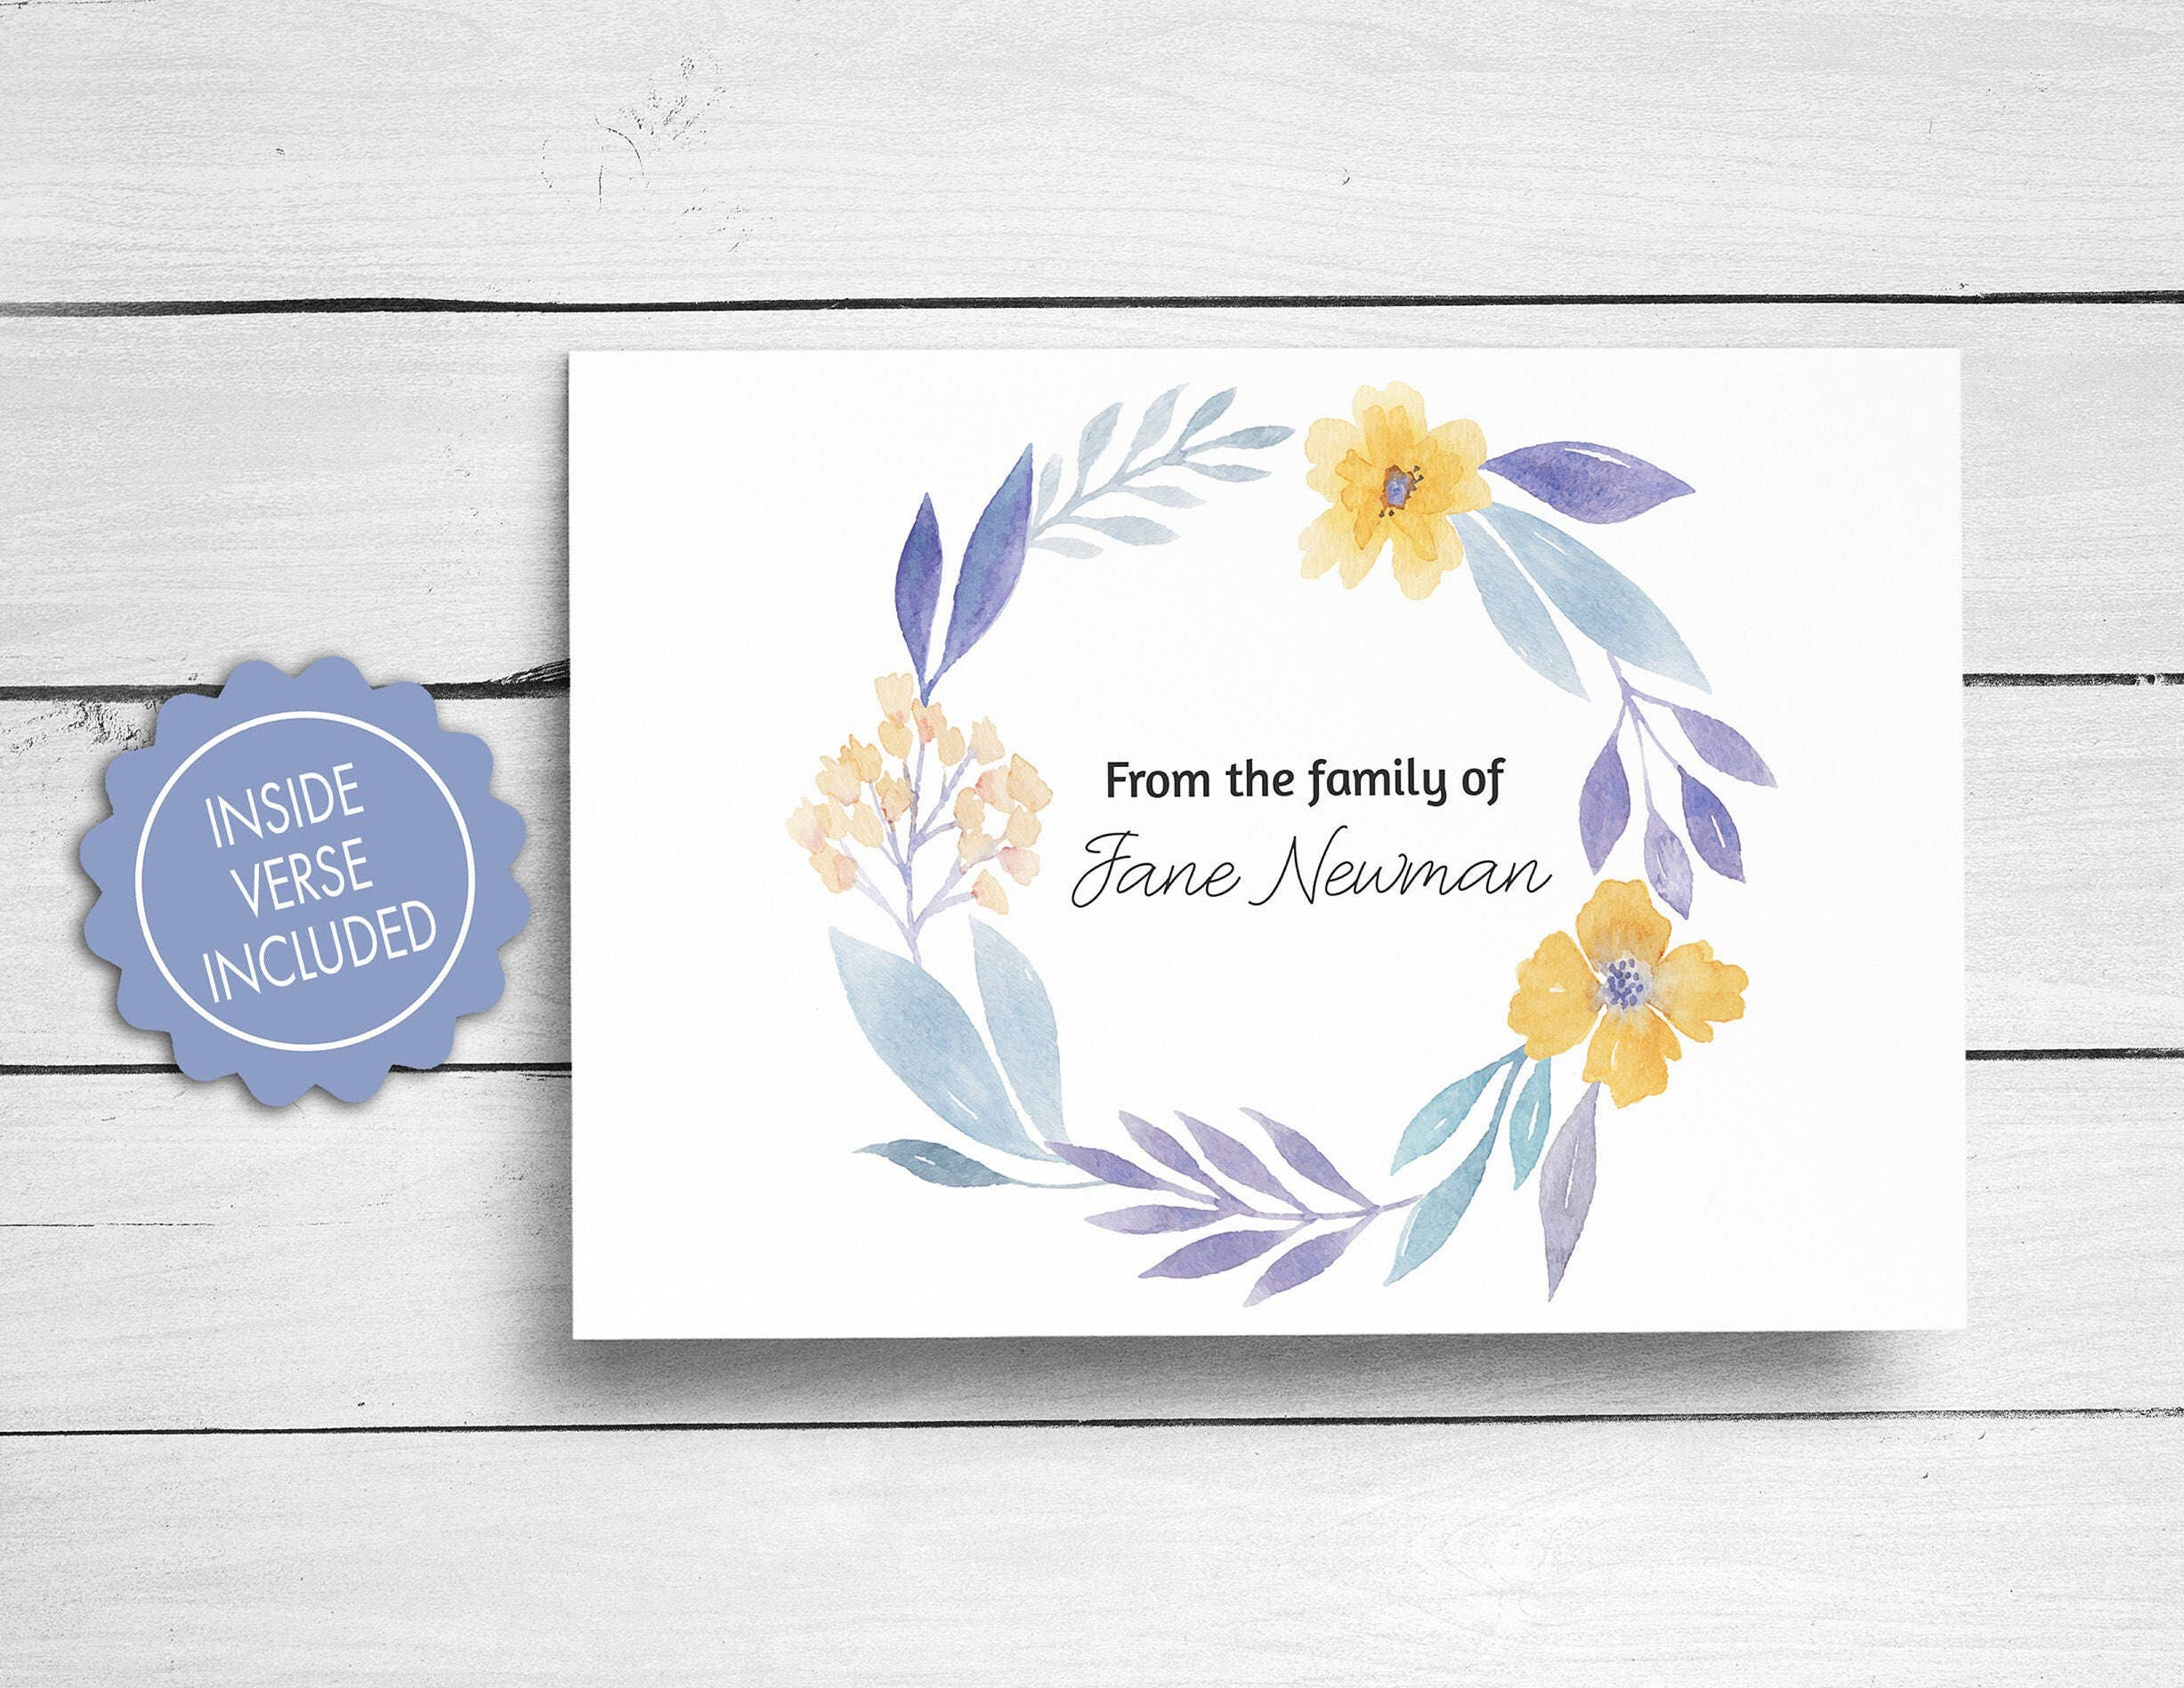 Sympathy acknowledgement cards funeral thank you cards bereavement sympathy acknowledgement cards funeral thank you cards bereavement cards floral funeral cards personalized funeral note cards m4hsunfo